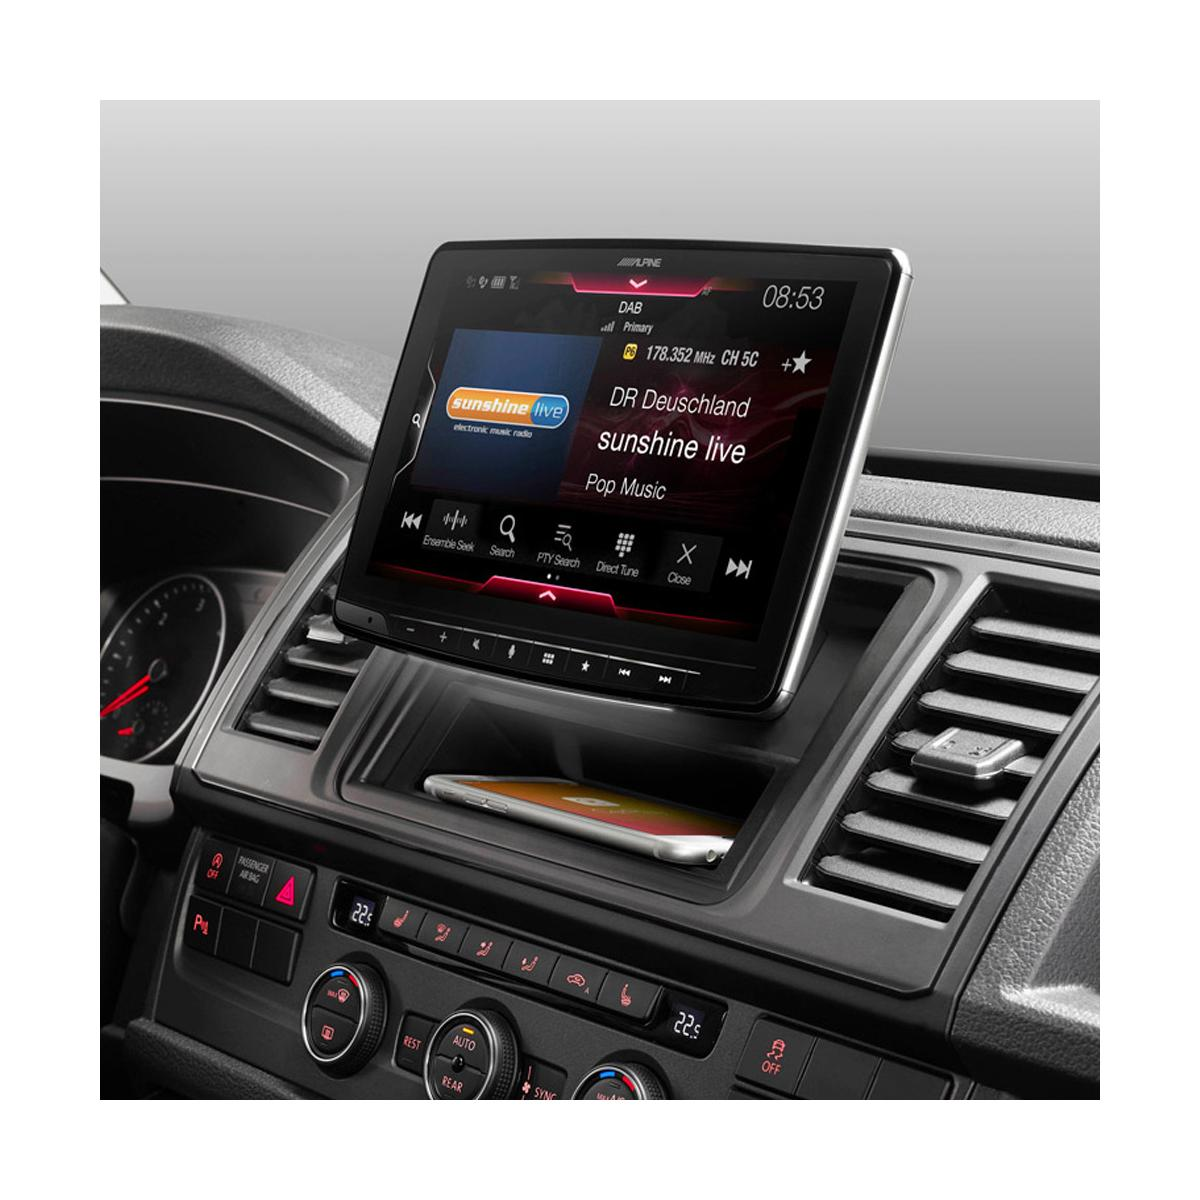 In Car Sat Nav Alpine Car Audio Systems iLX-F903D 4